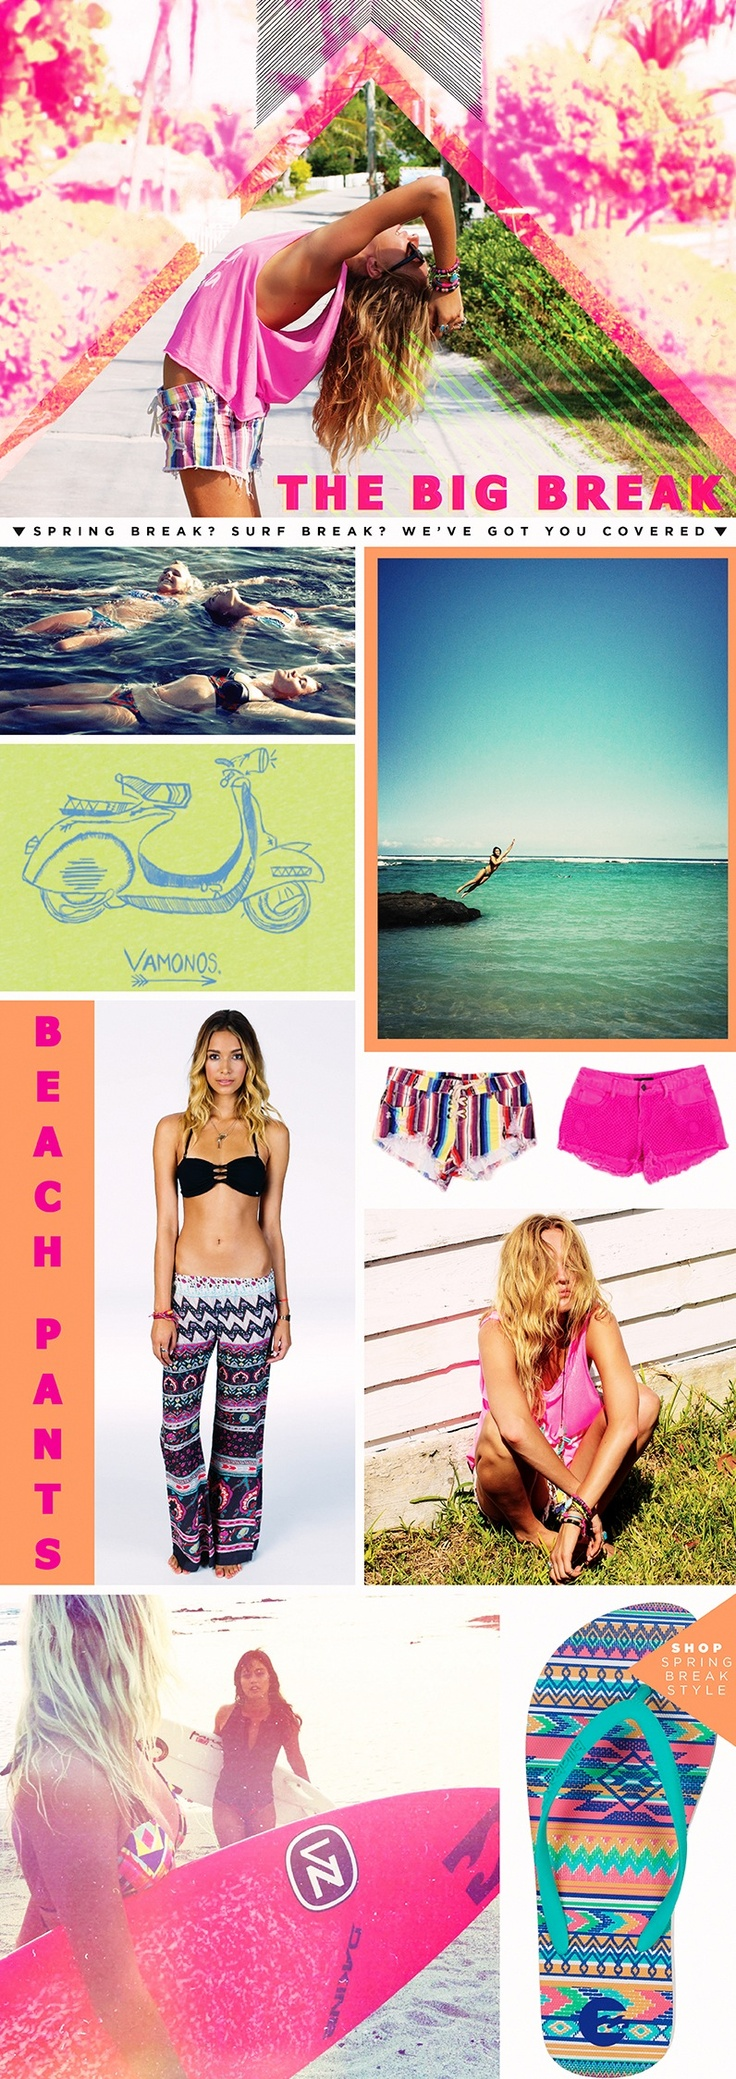 best beach images on pinterest pura vida wallpapers and